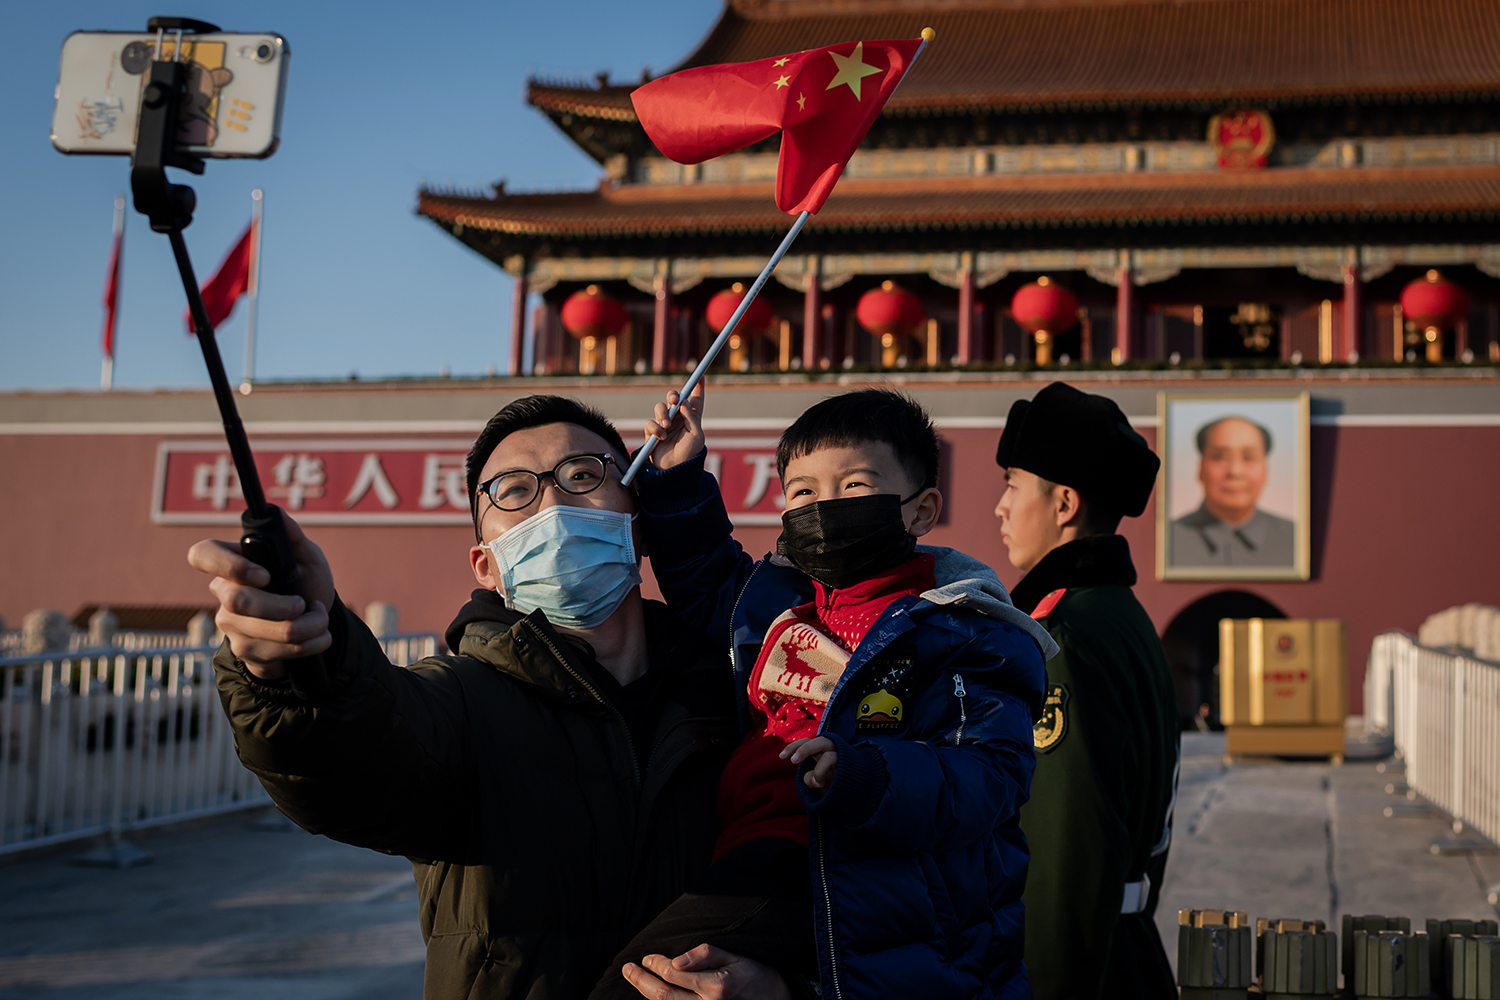 A boy and his father wear protective masks amid the coronavirus outbreak as they take a selfie at Tiananmen Gate in Beijing on Jan. 23. NICOLAS ASFOURI/AFP via Getty Images